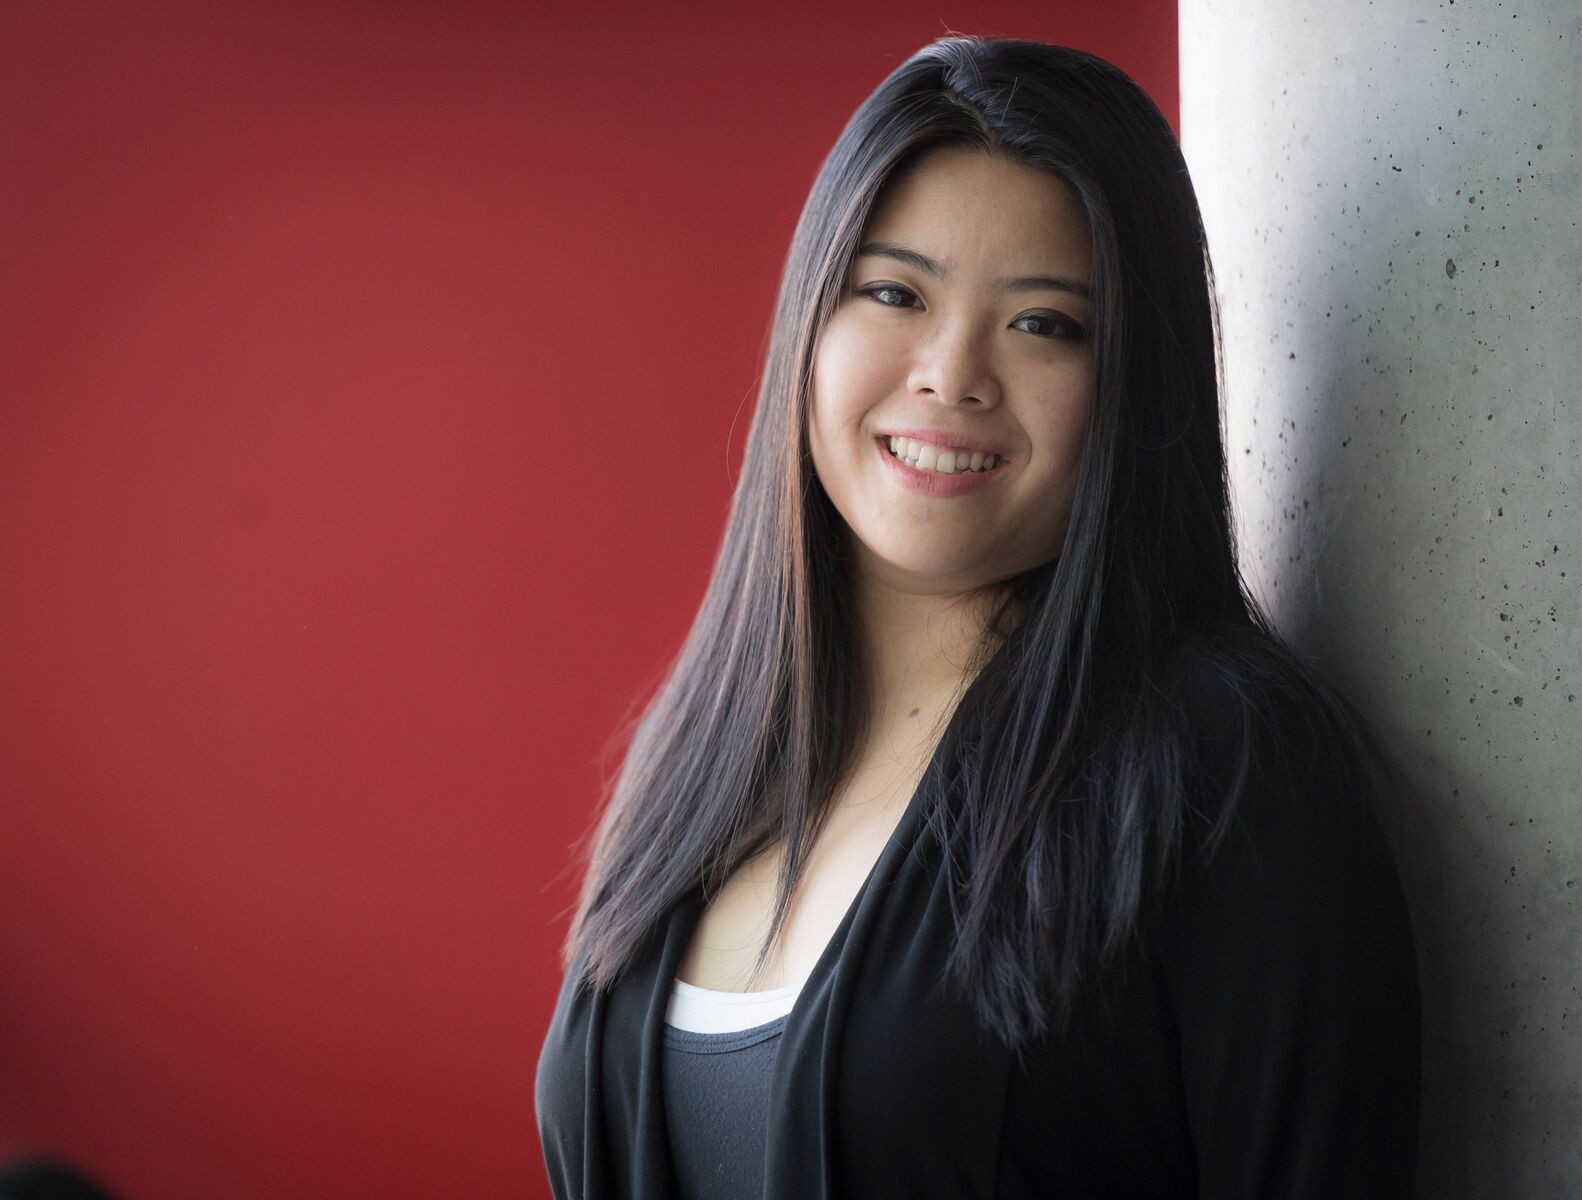 Christina Chiu - Christina graduated from Simon Fraser University (SFU) in 2010 with a Bachelor of Science (First Class Honours) in Health Sciences and is currently completing a Master of Health Administration at UBC. Prior to CareCrew, Christina worked as a consultant to non-profit organizations and government-funded health care facilities.Founder and CEO